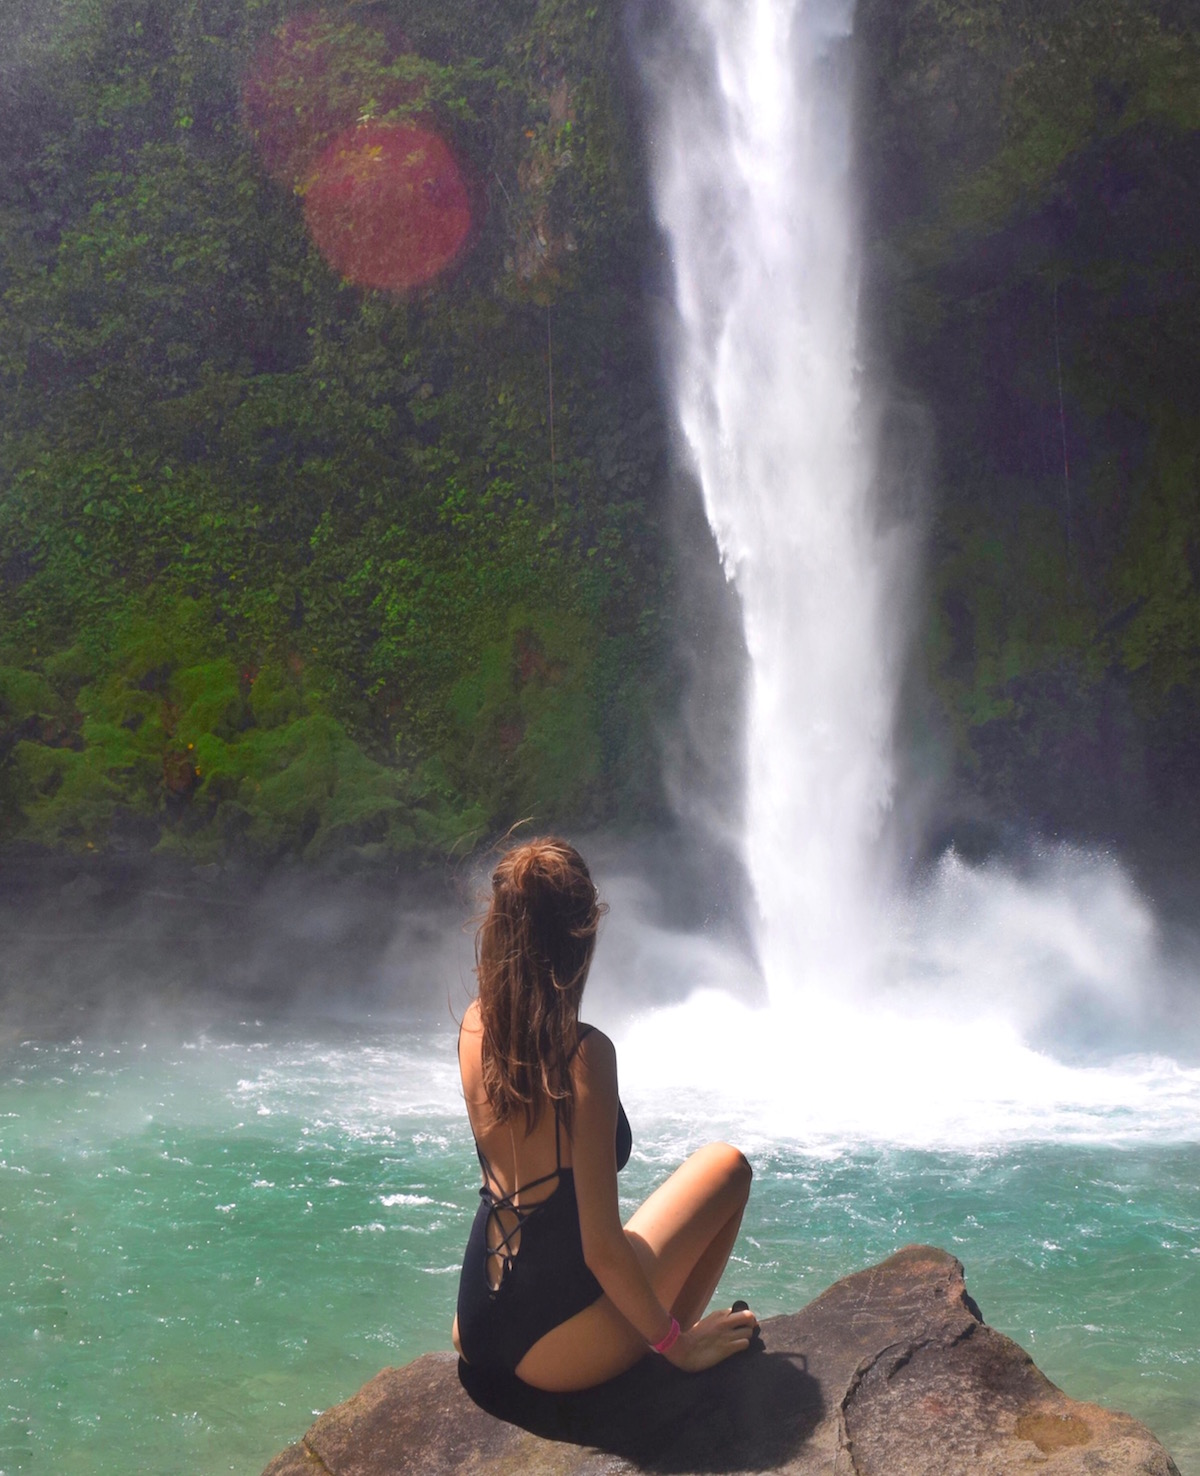 The beauiful La Fortuna Waterfall in Costa Rica.   Tessa Juliette | Travel Where to Next http://travelwheretonext.com